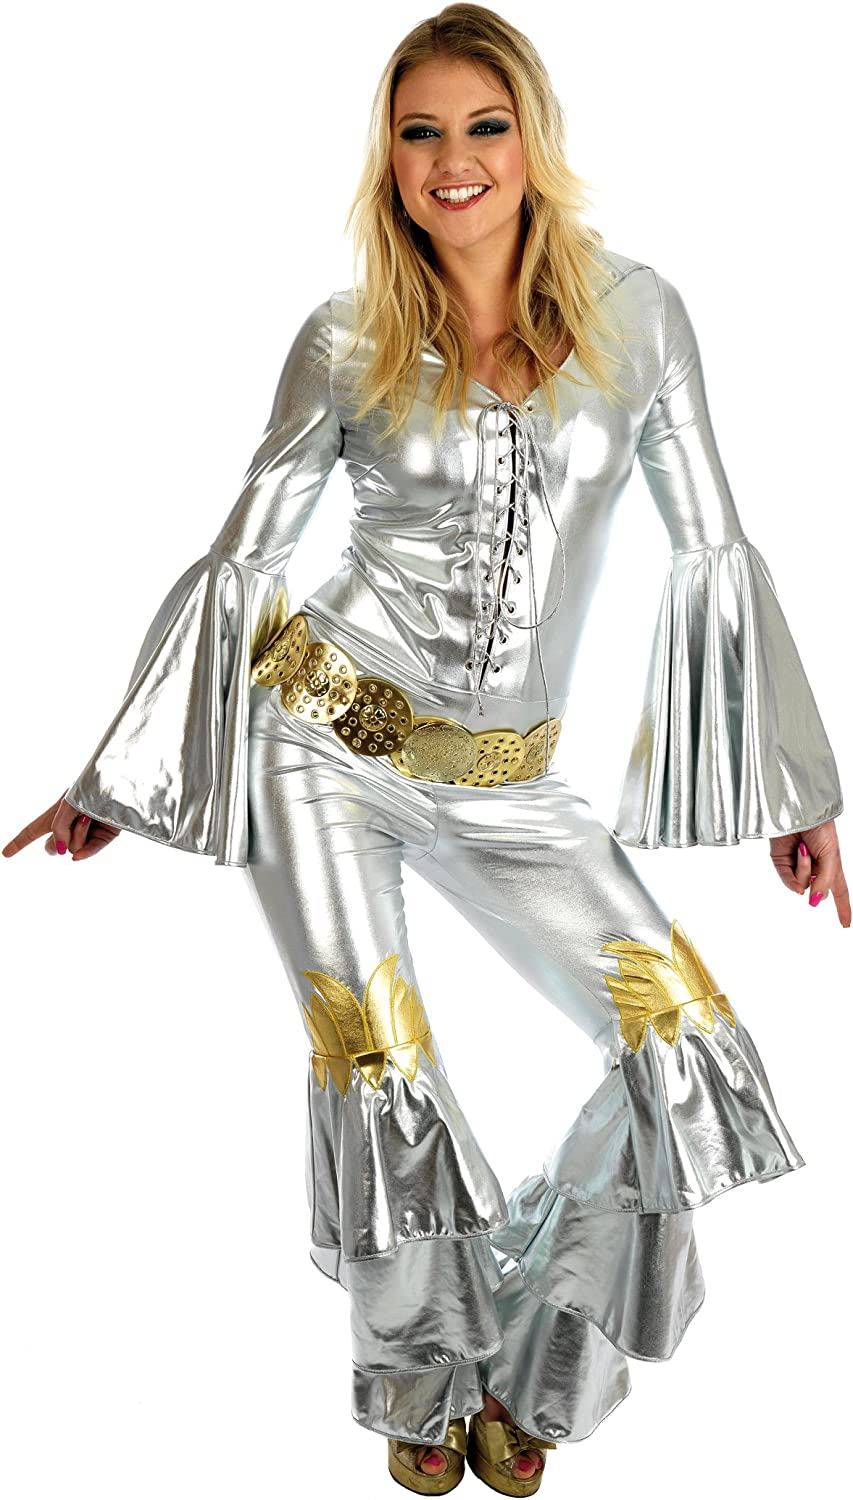 ABBA DANCING QUEEN FANCY DRESS COSTUME XXL 20-22 (disfraz): Amazon ...